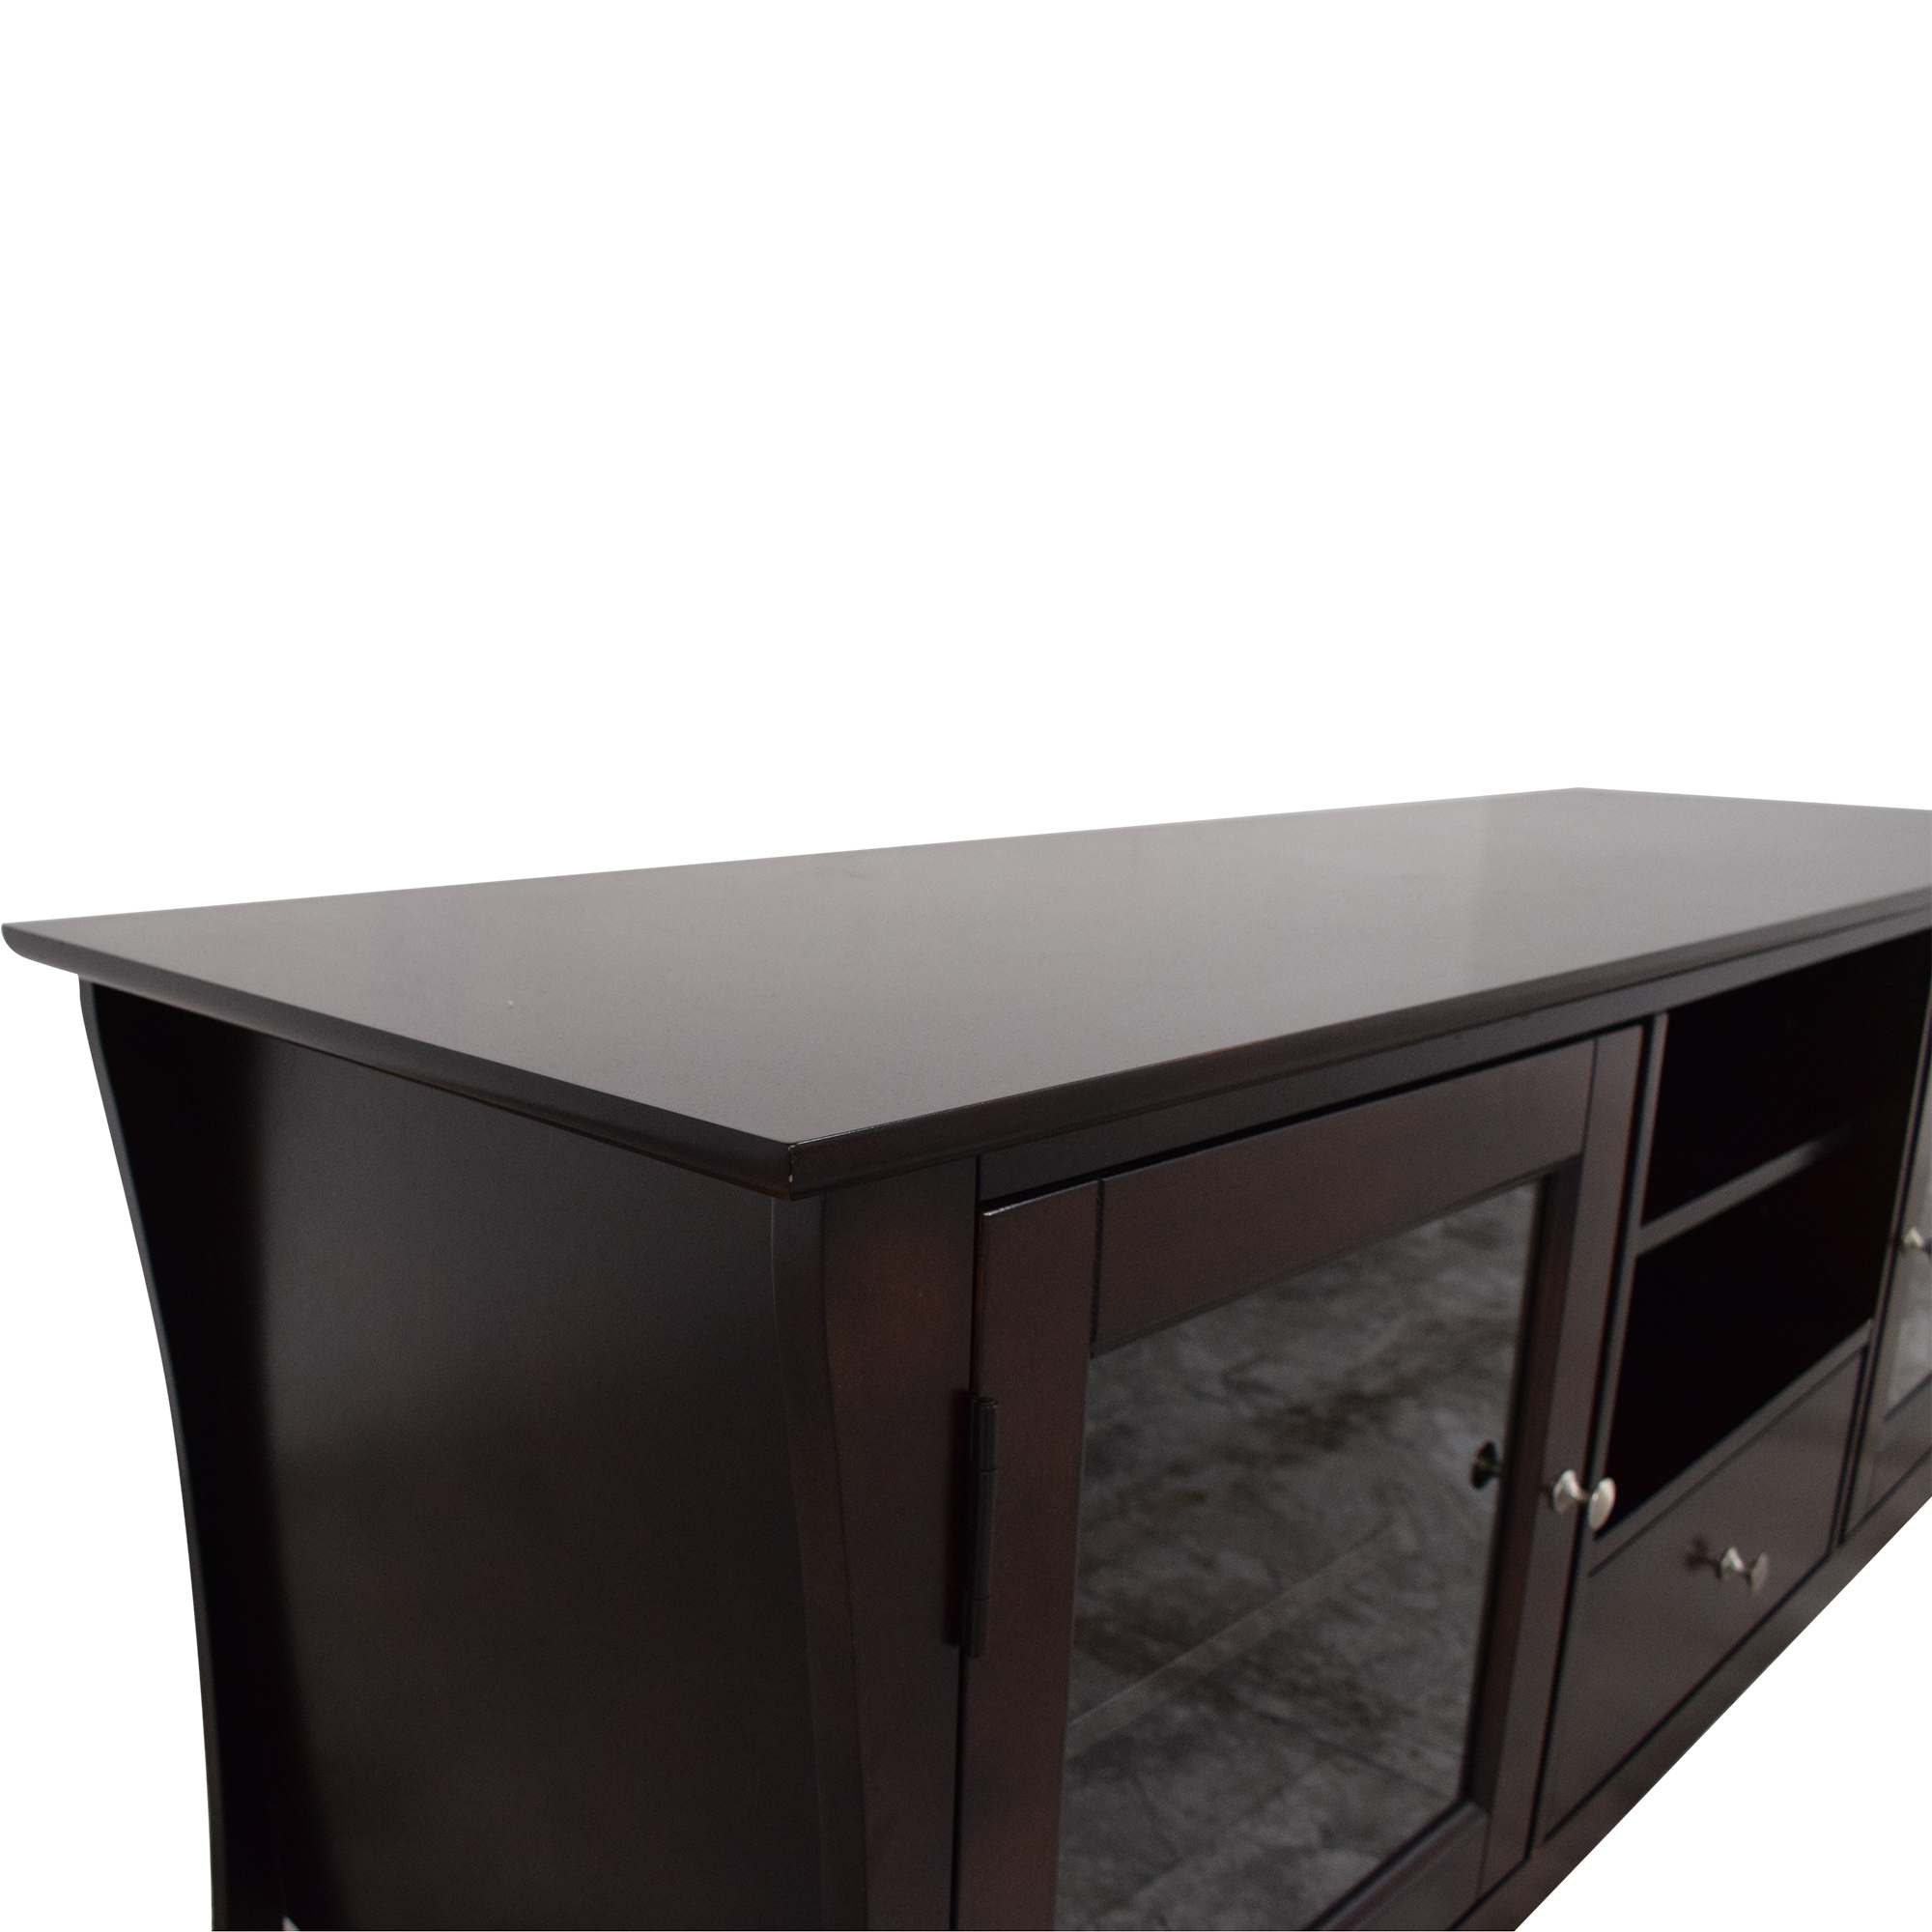 Homelegance Furniture Homelegance Borgeois TV Stand